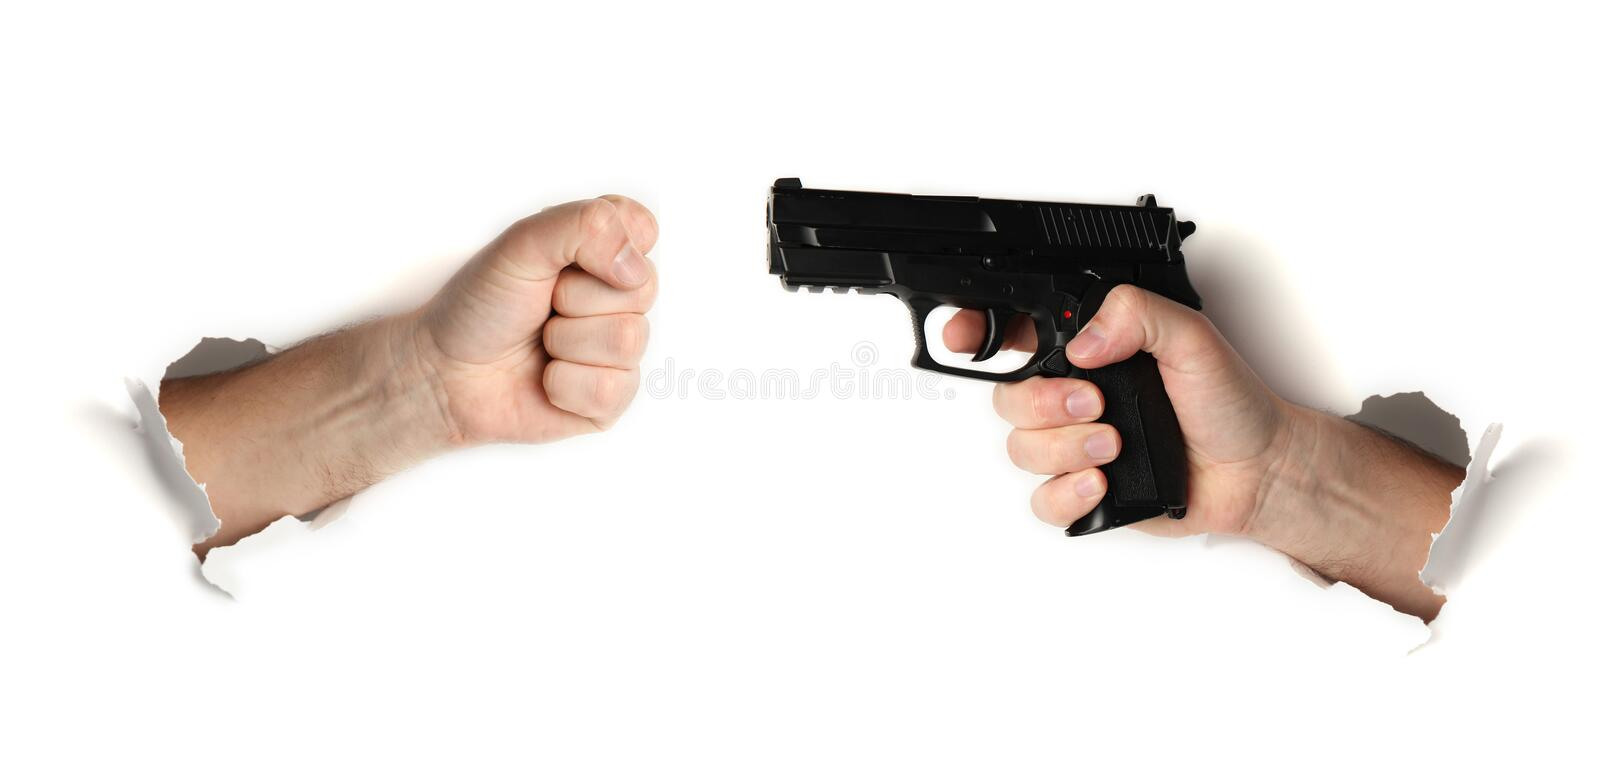 Fist against hand with gun, danger and violence concept.  royalty free stock image